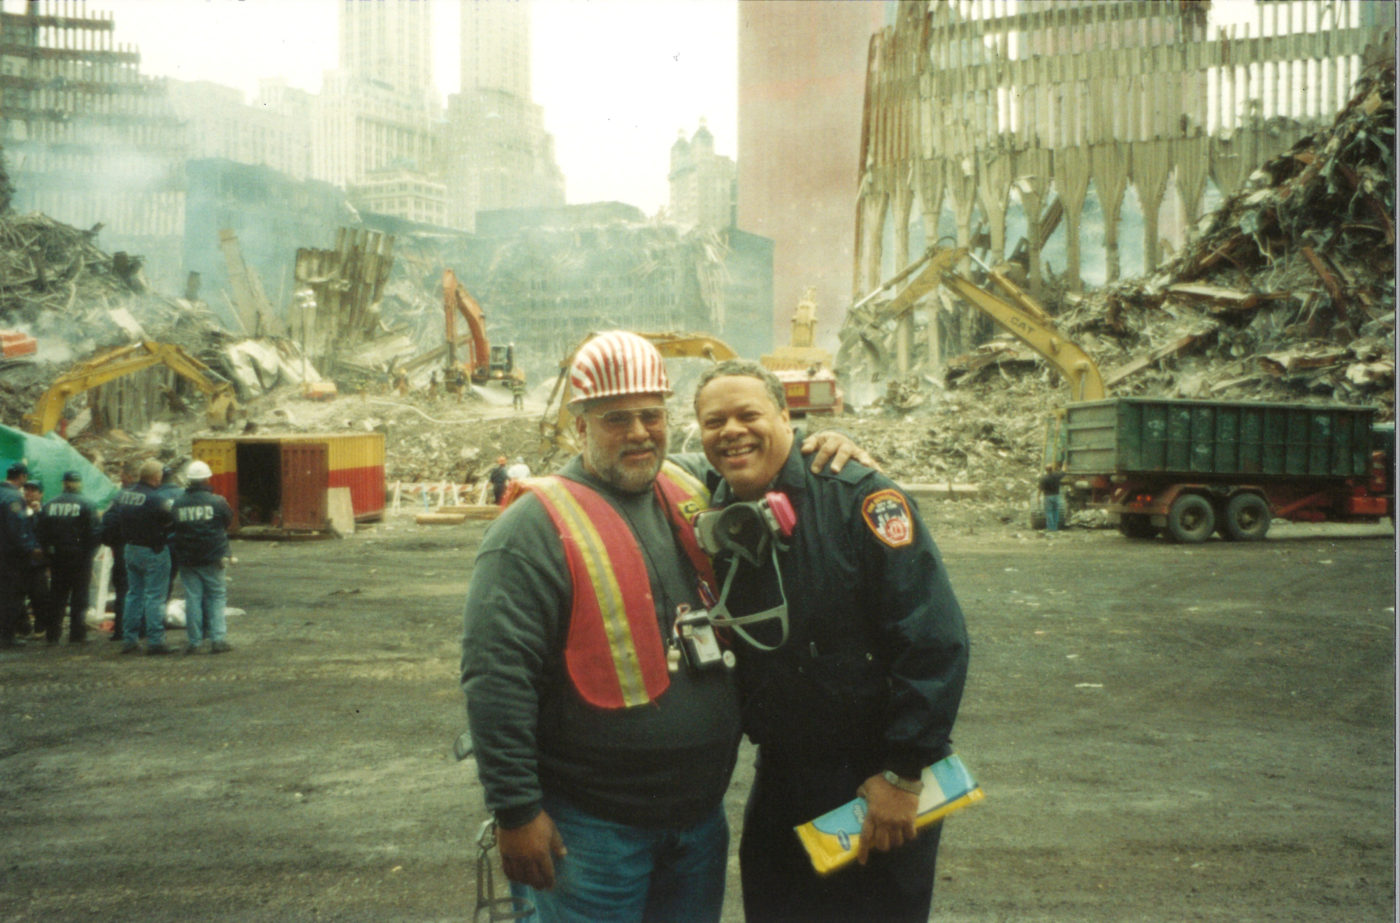 Unknown Local 731 Contractor and an FDNY Firefighter Take Photo Together at Ground Zero